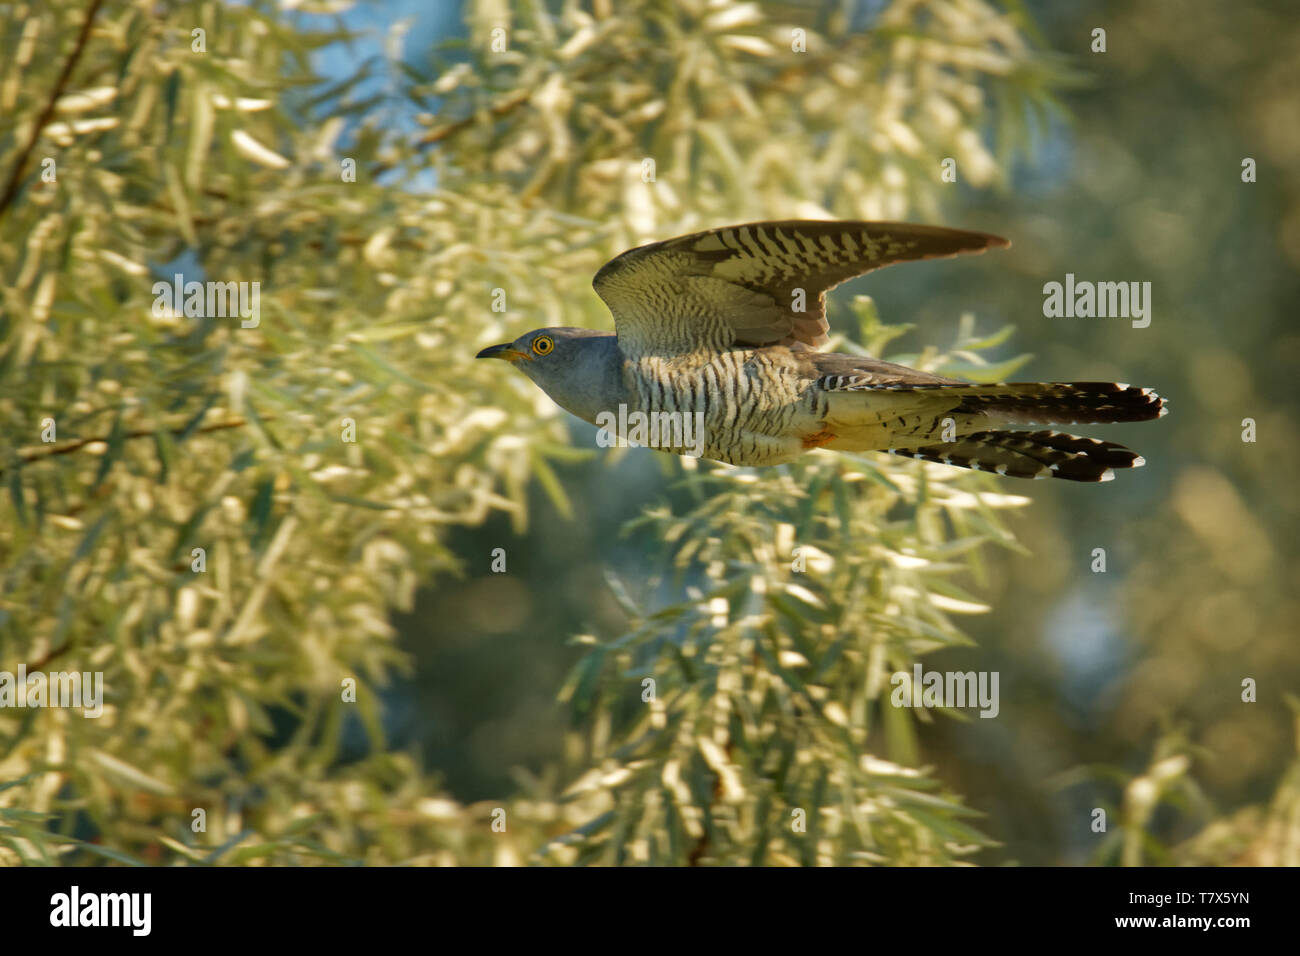 Cuculus canorus - Common Cuckoo in the fly, widespread summer migrant to Europe and Asia, and winters in Africa, brood parasite. - Stock Image